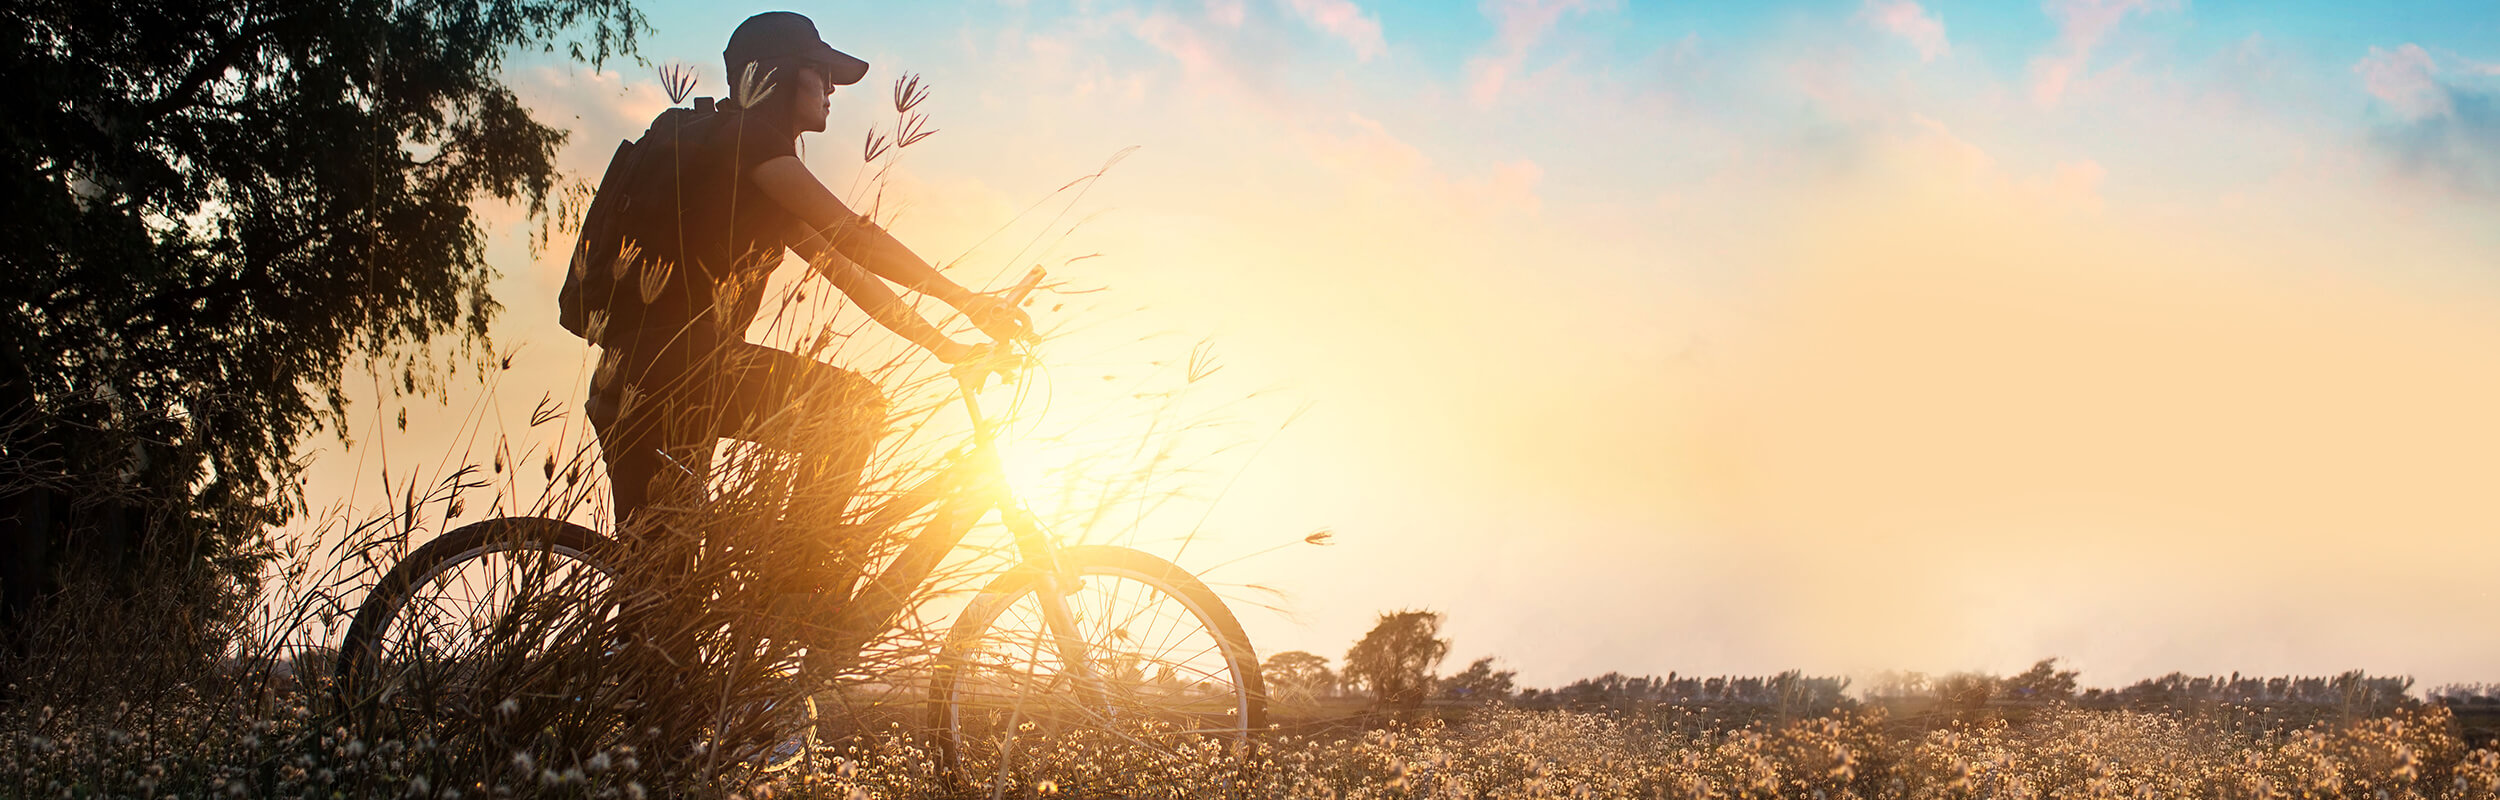 46d6574ff CYCLE-E AROUND: TWO WHEELS, MILES OF EXPERIENCES. Spend YOUR HOLIDAY  discovering AMAZING VIEWS AND HIDDEN GEMS